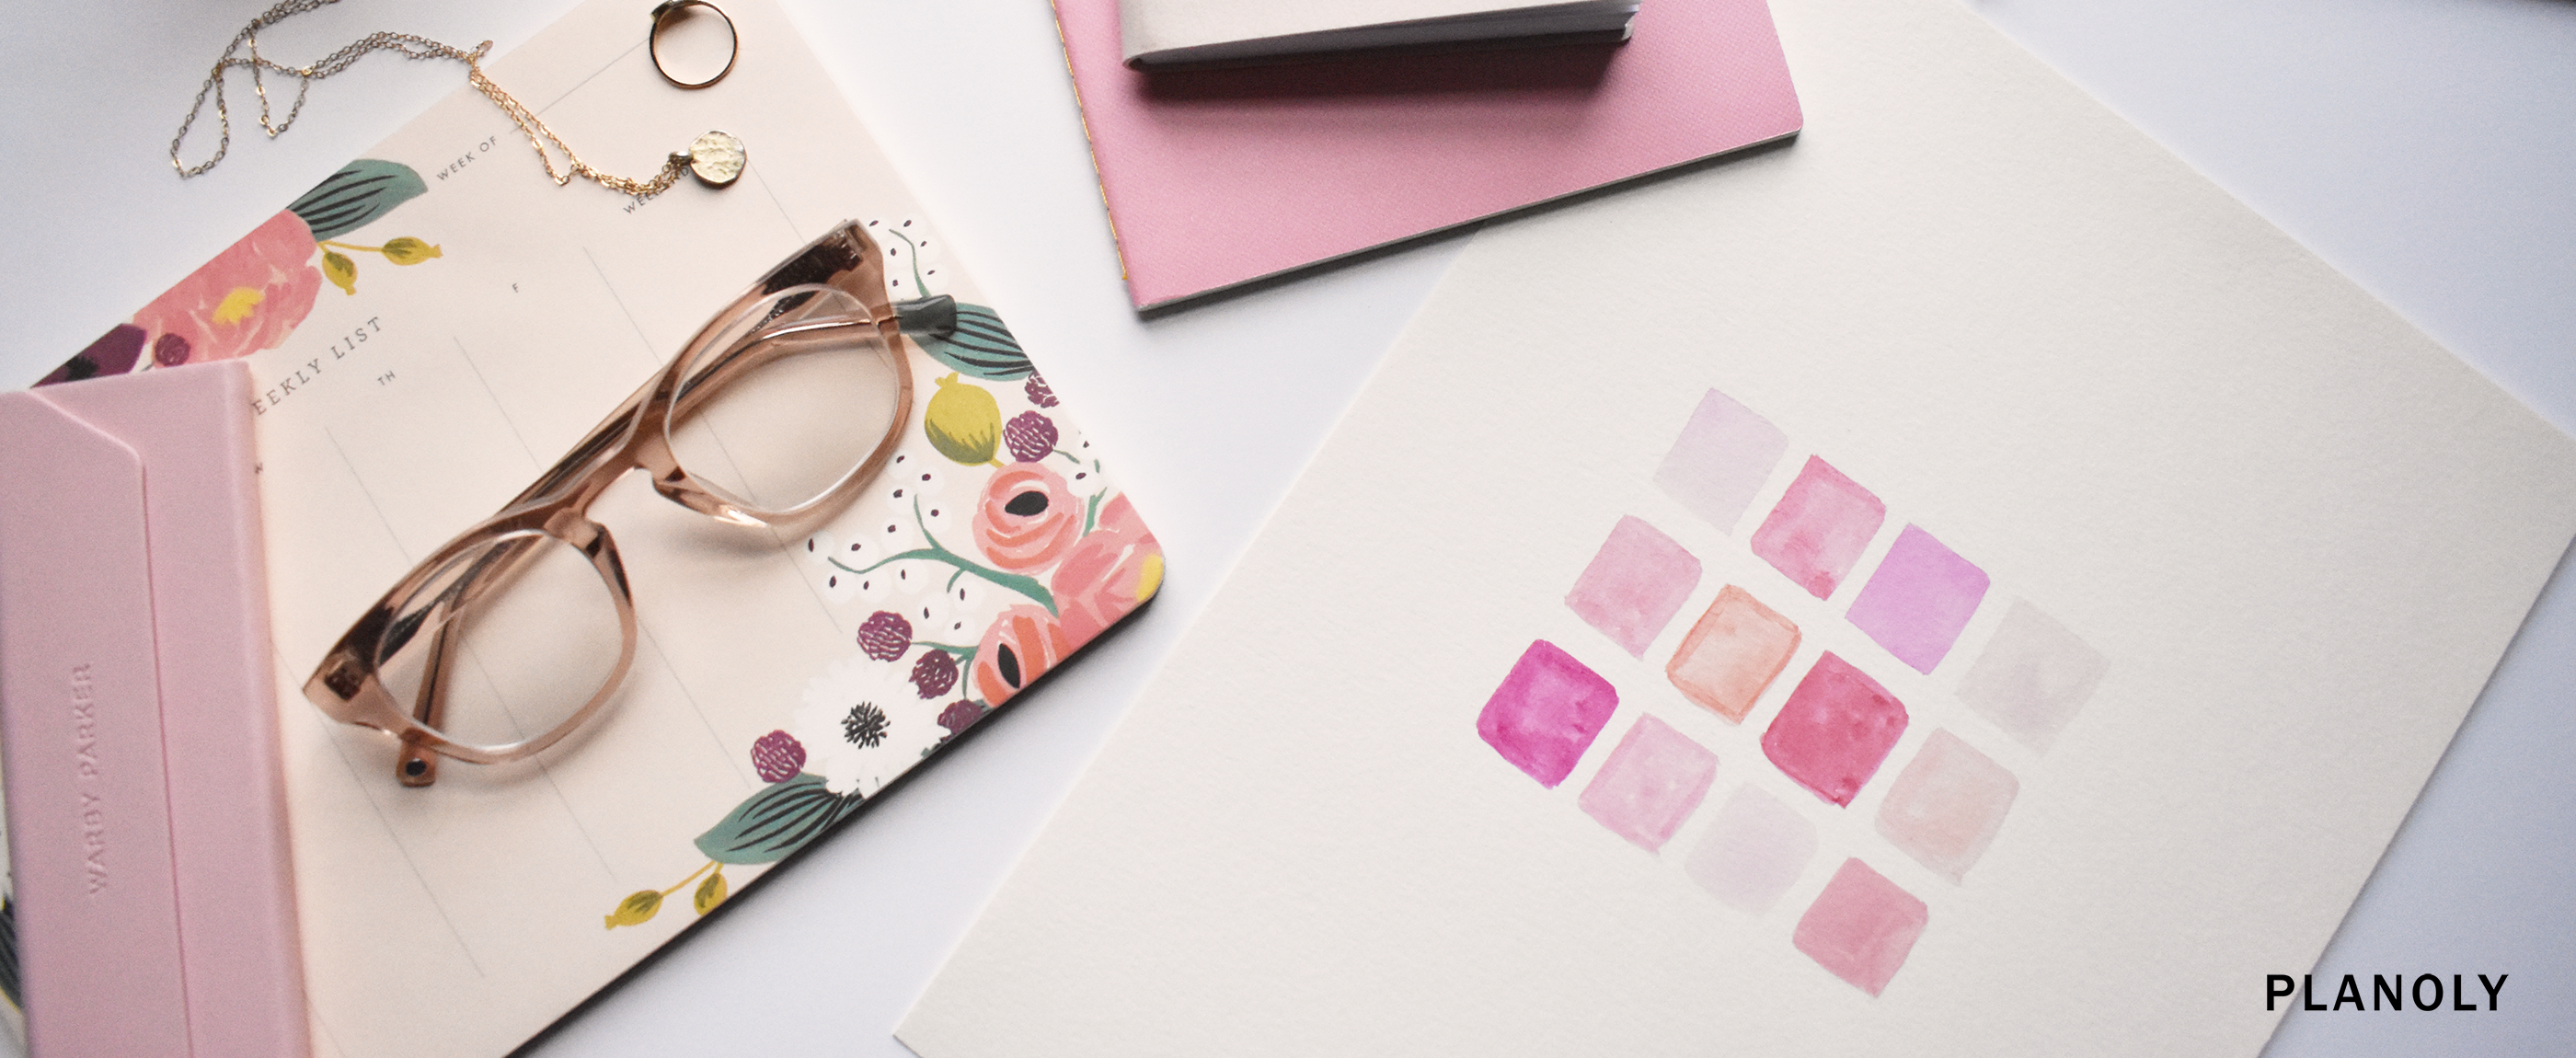 Color Psychology: The Color Pink